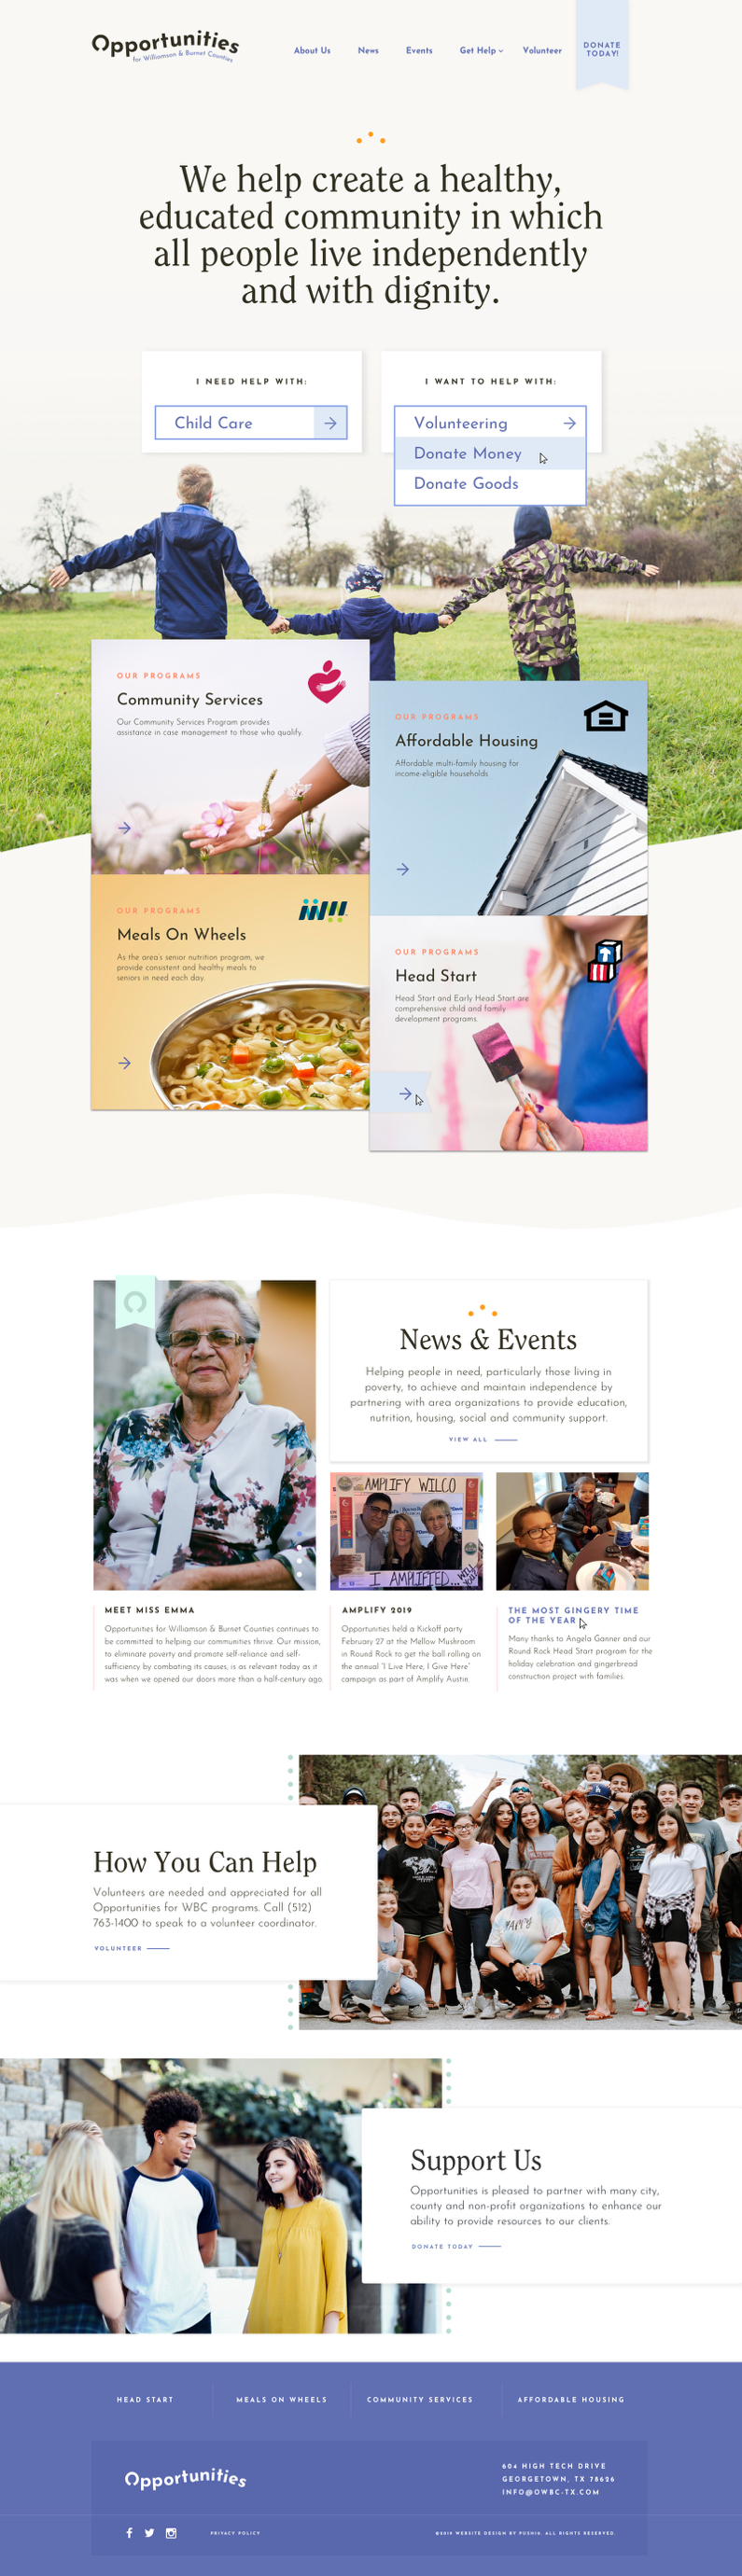 Responsive web design for Austin-based nonprofit organization